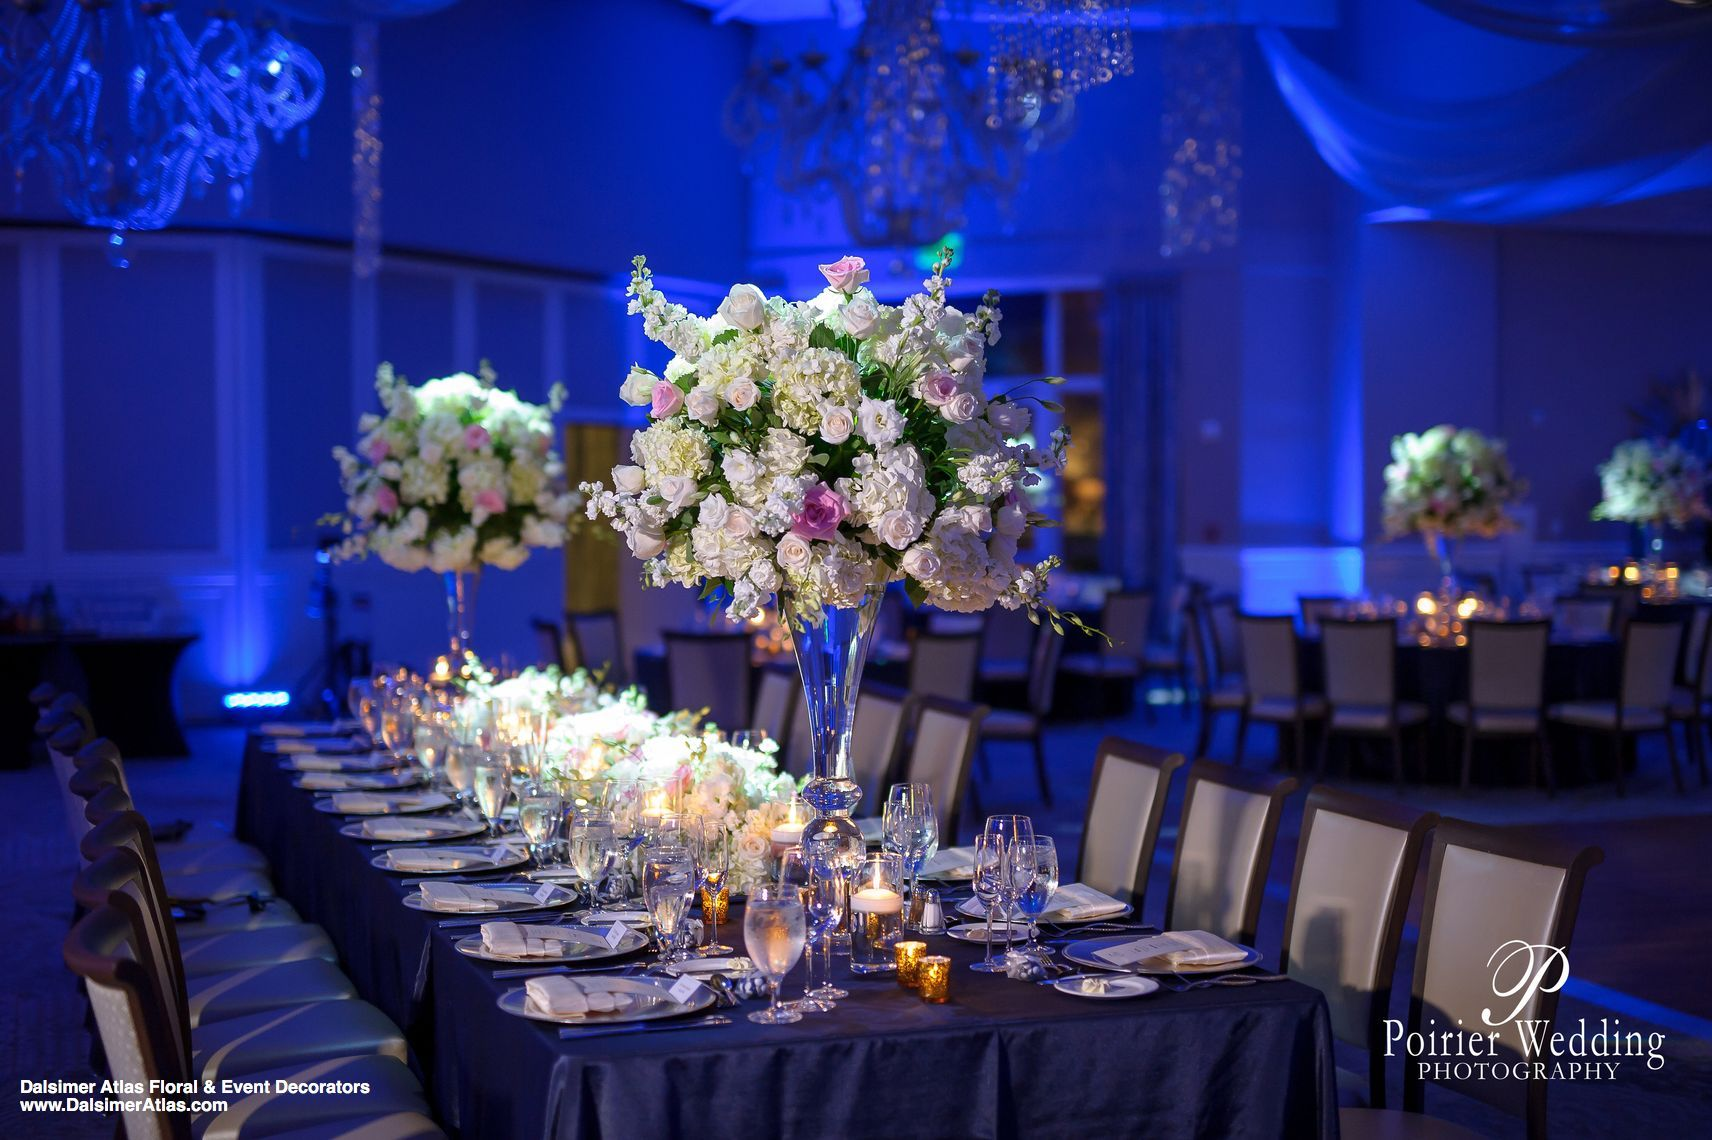 Wedding   The Country Club At Mirasol, Palm Beach Gardens|Dalsimer Atlas  Floral And